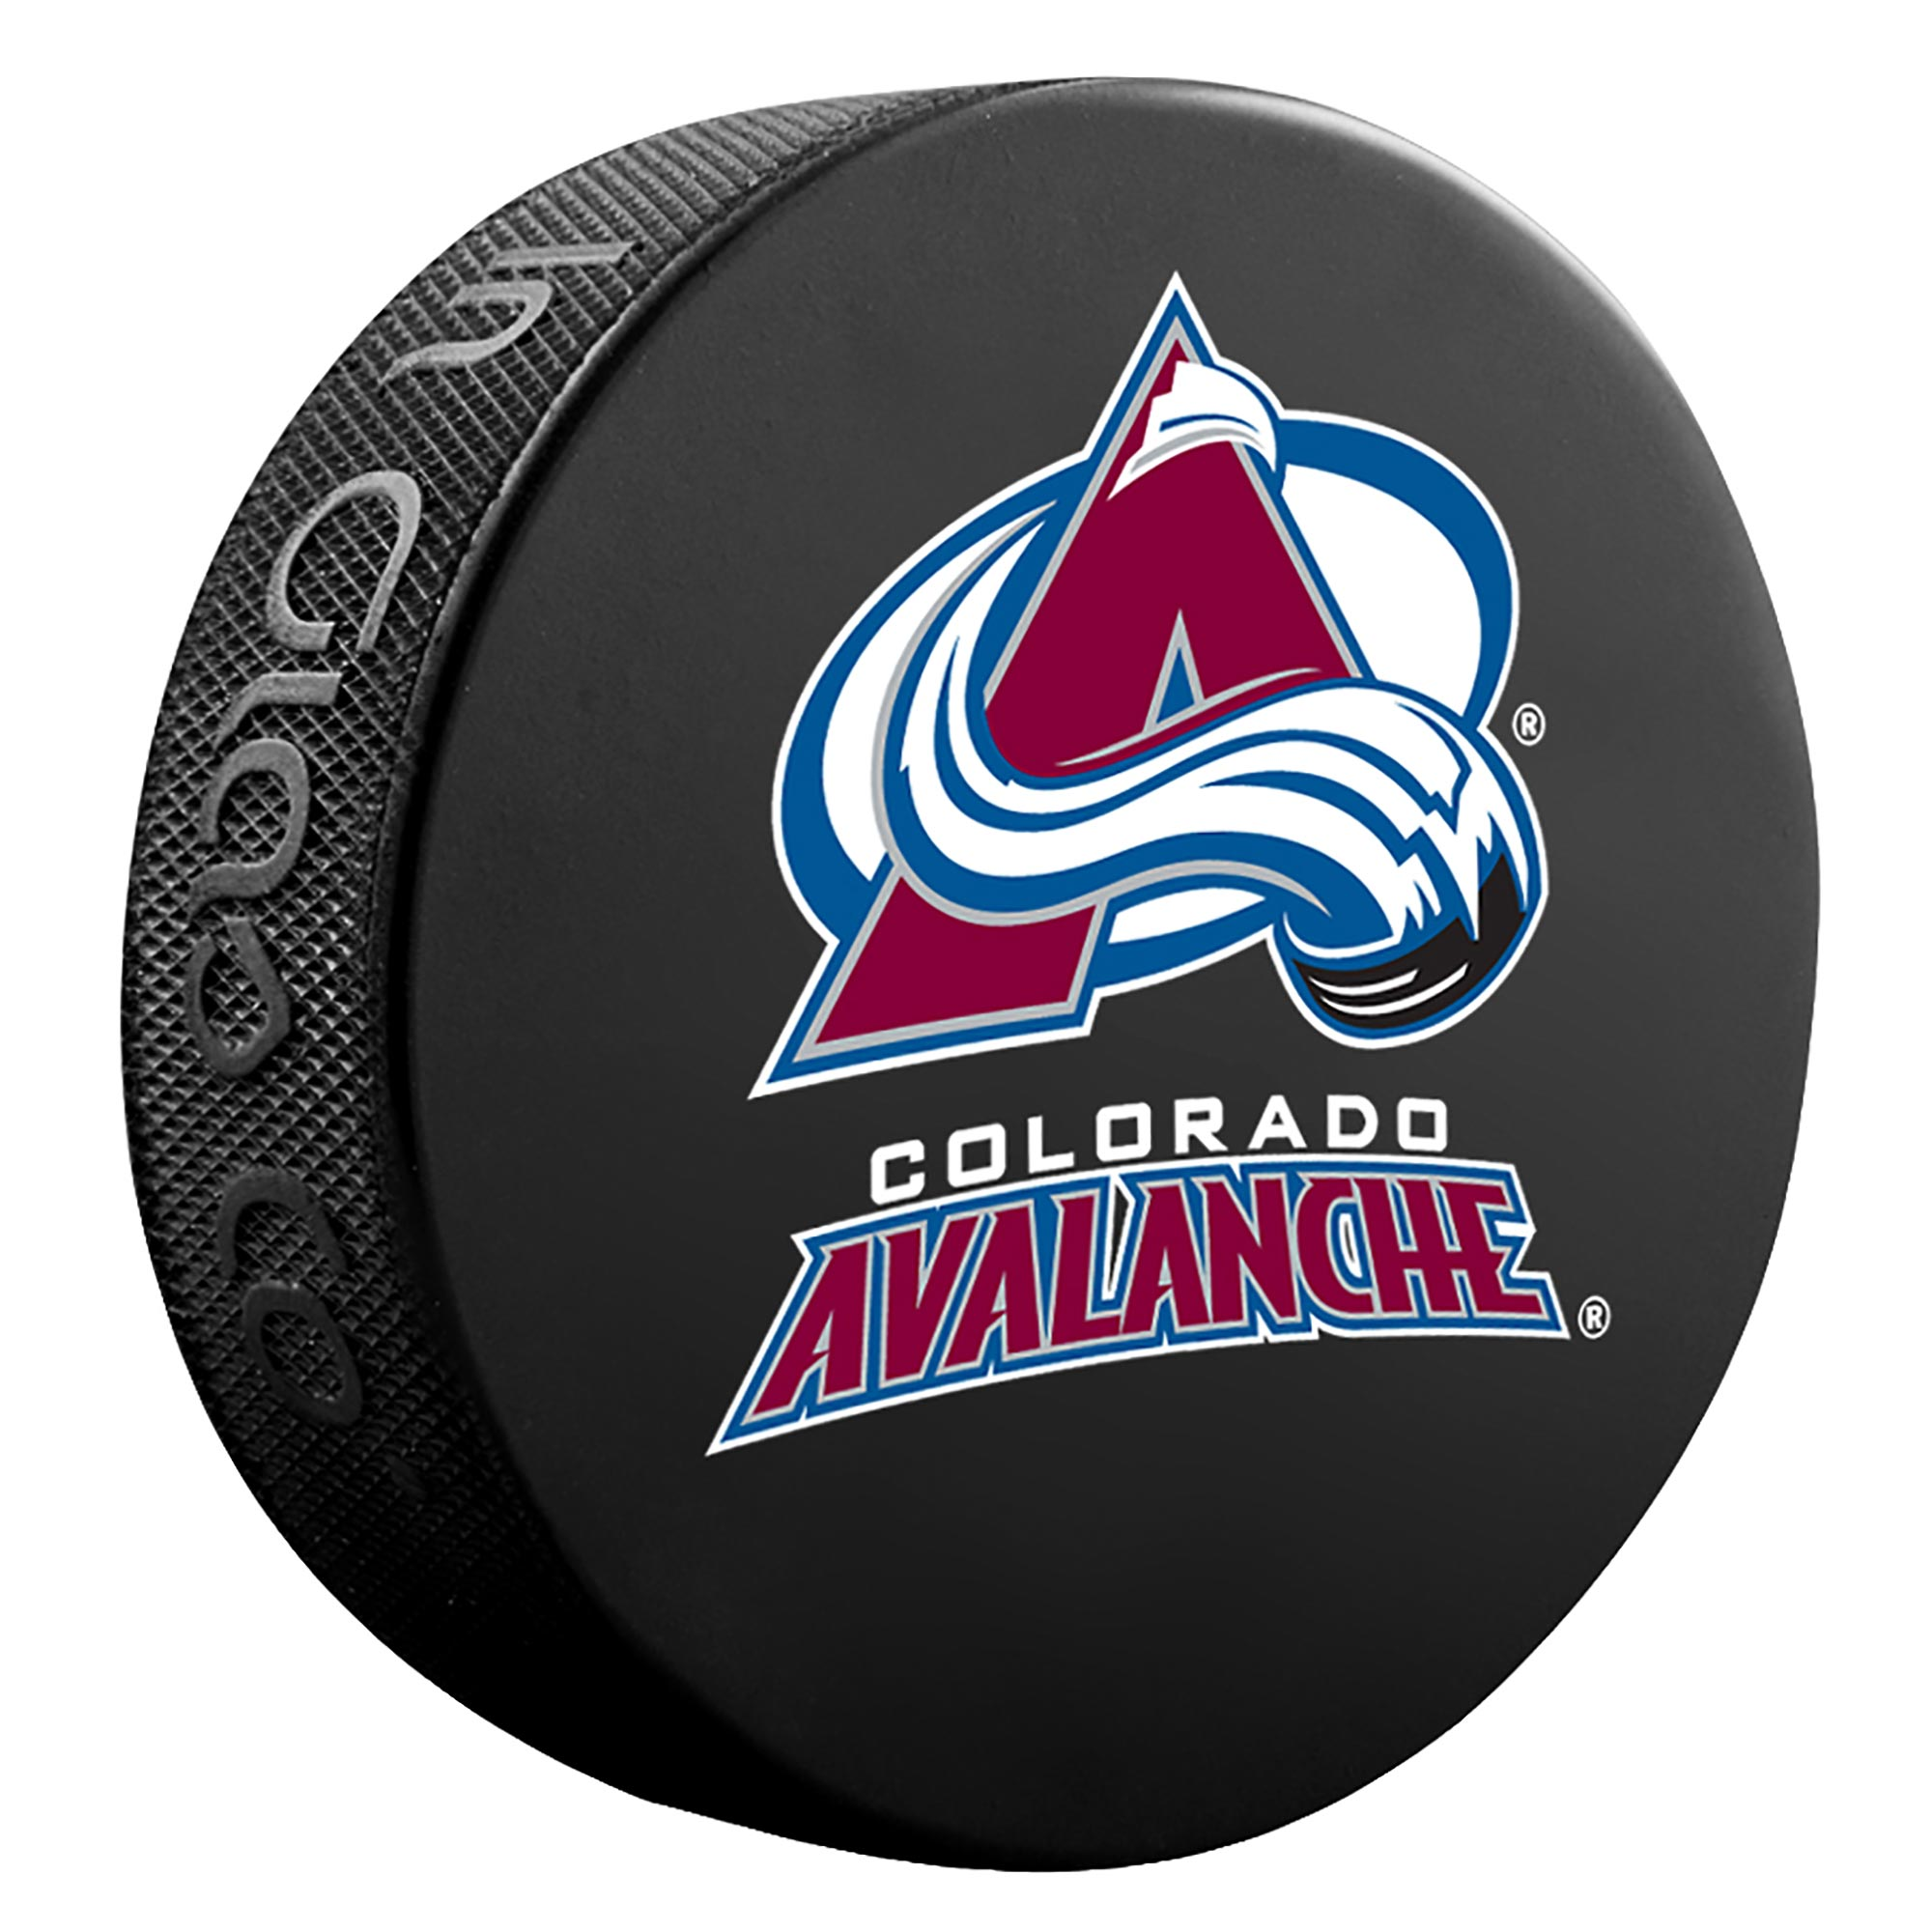 Colorado Avalanche Team Puck